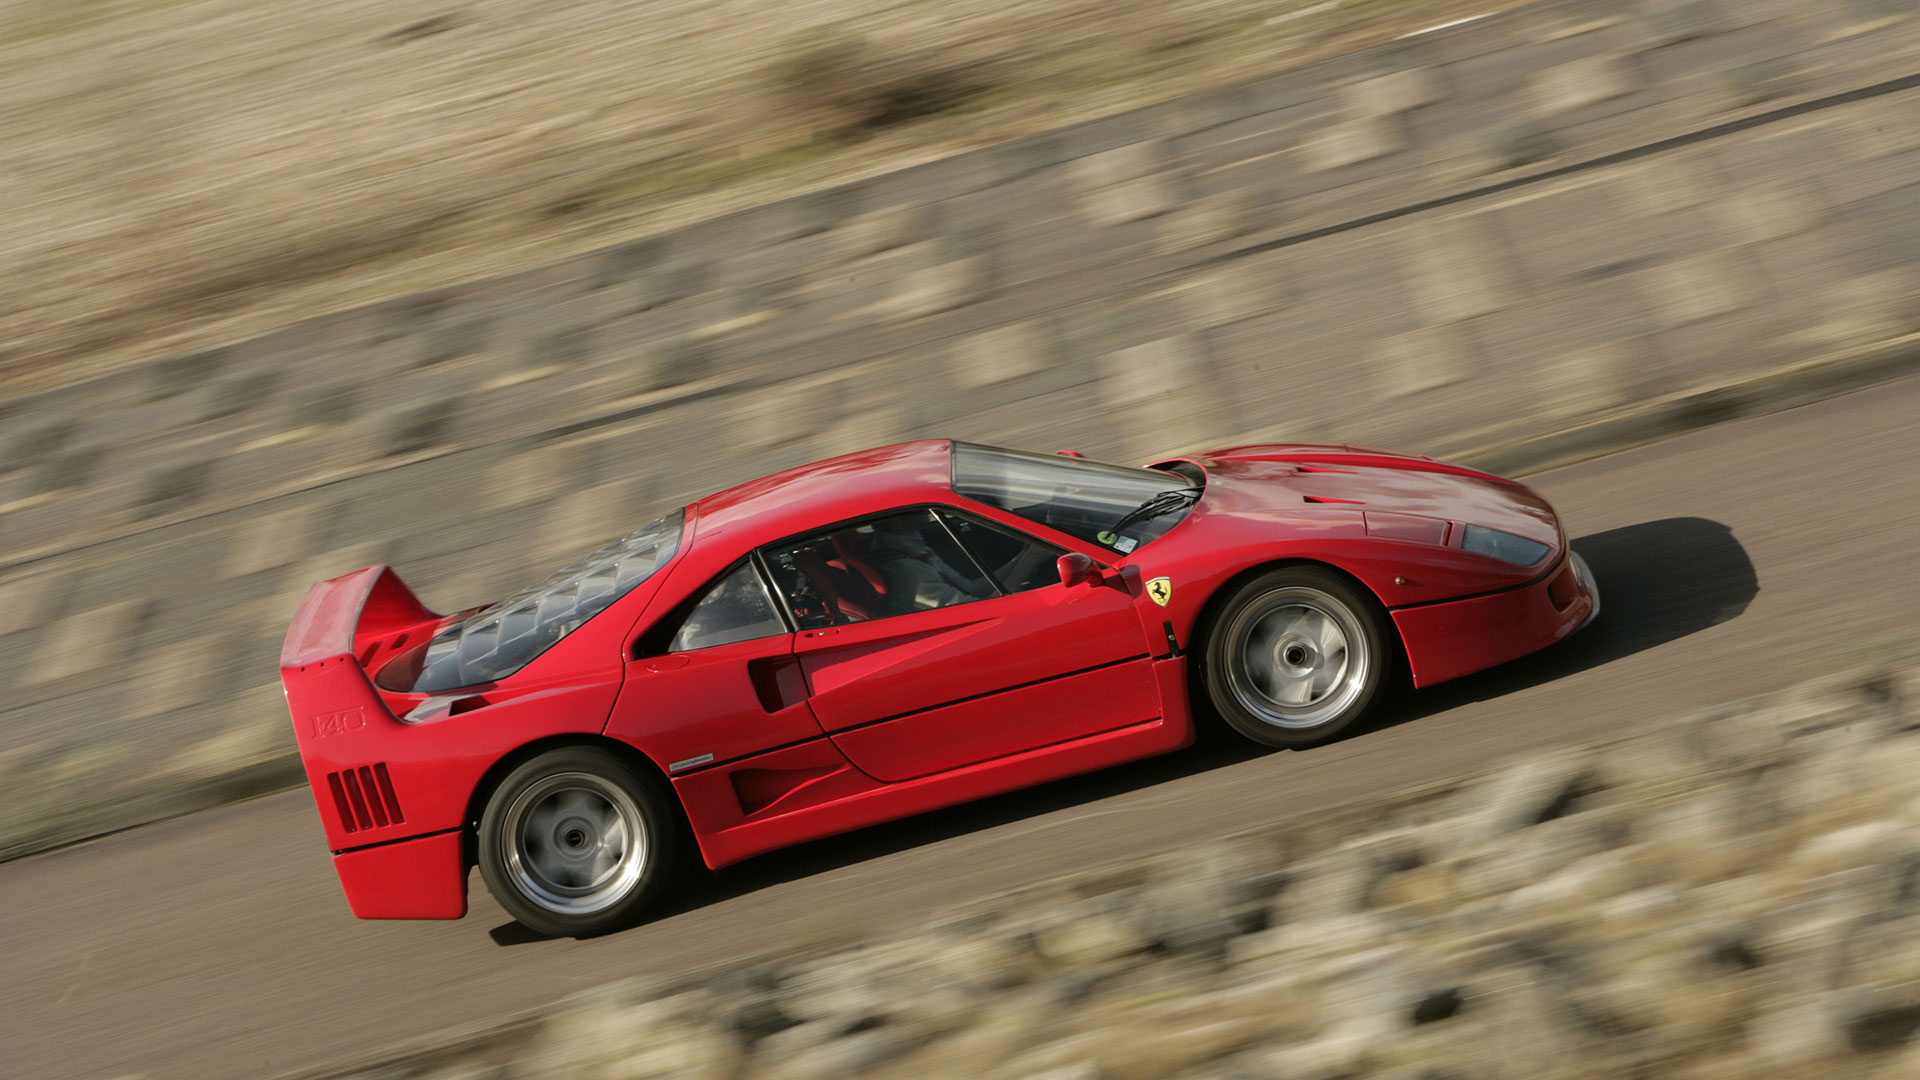 Ferrari F40: 3.9 seconds